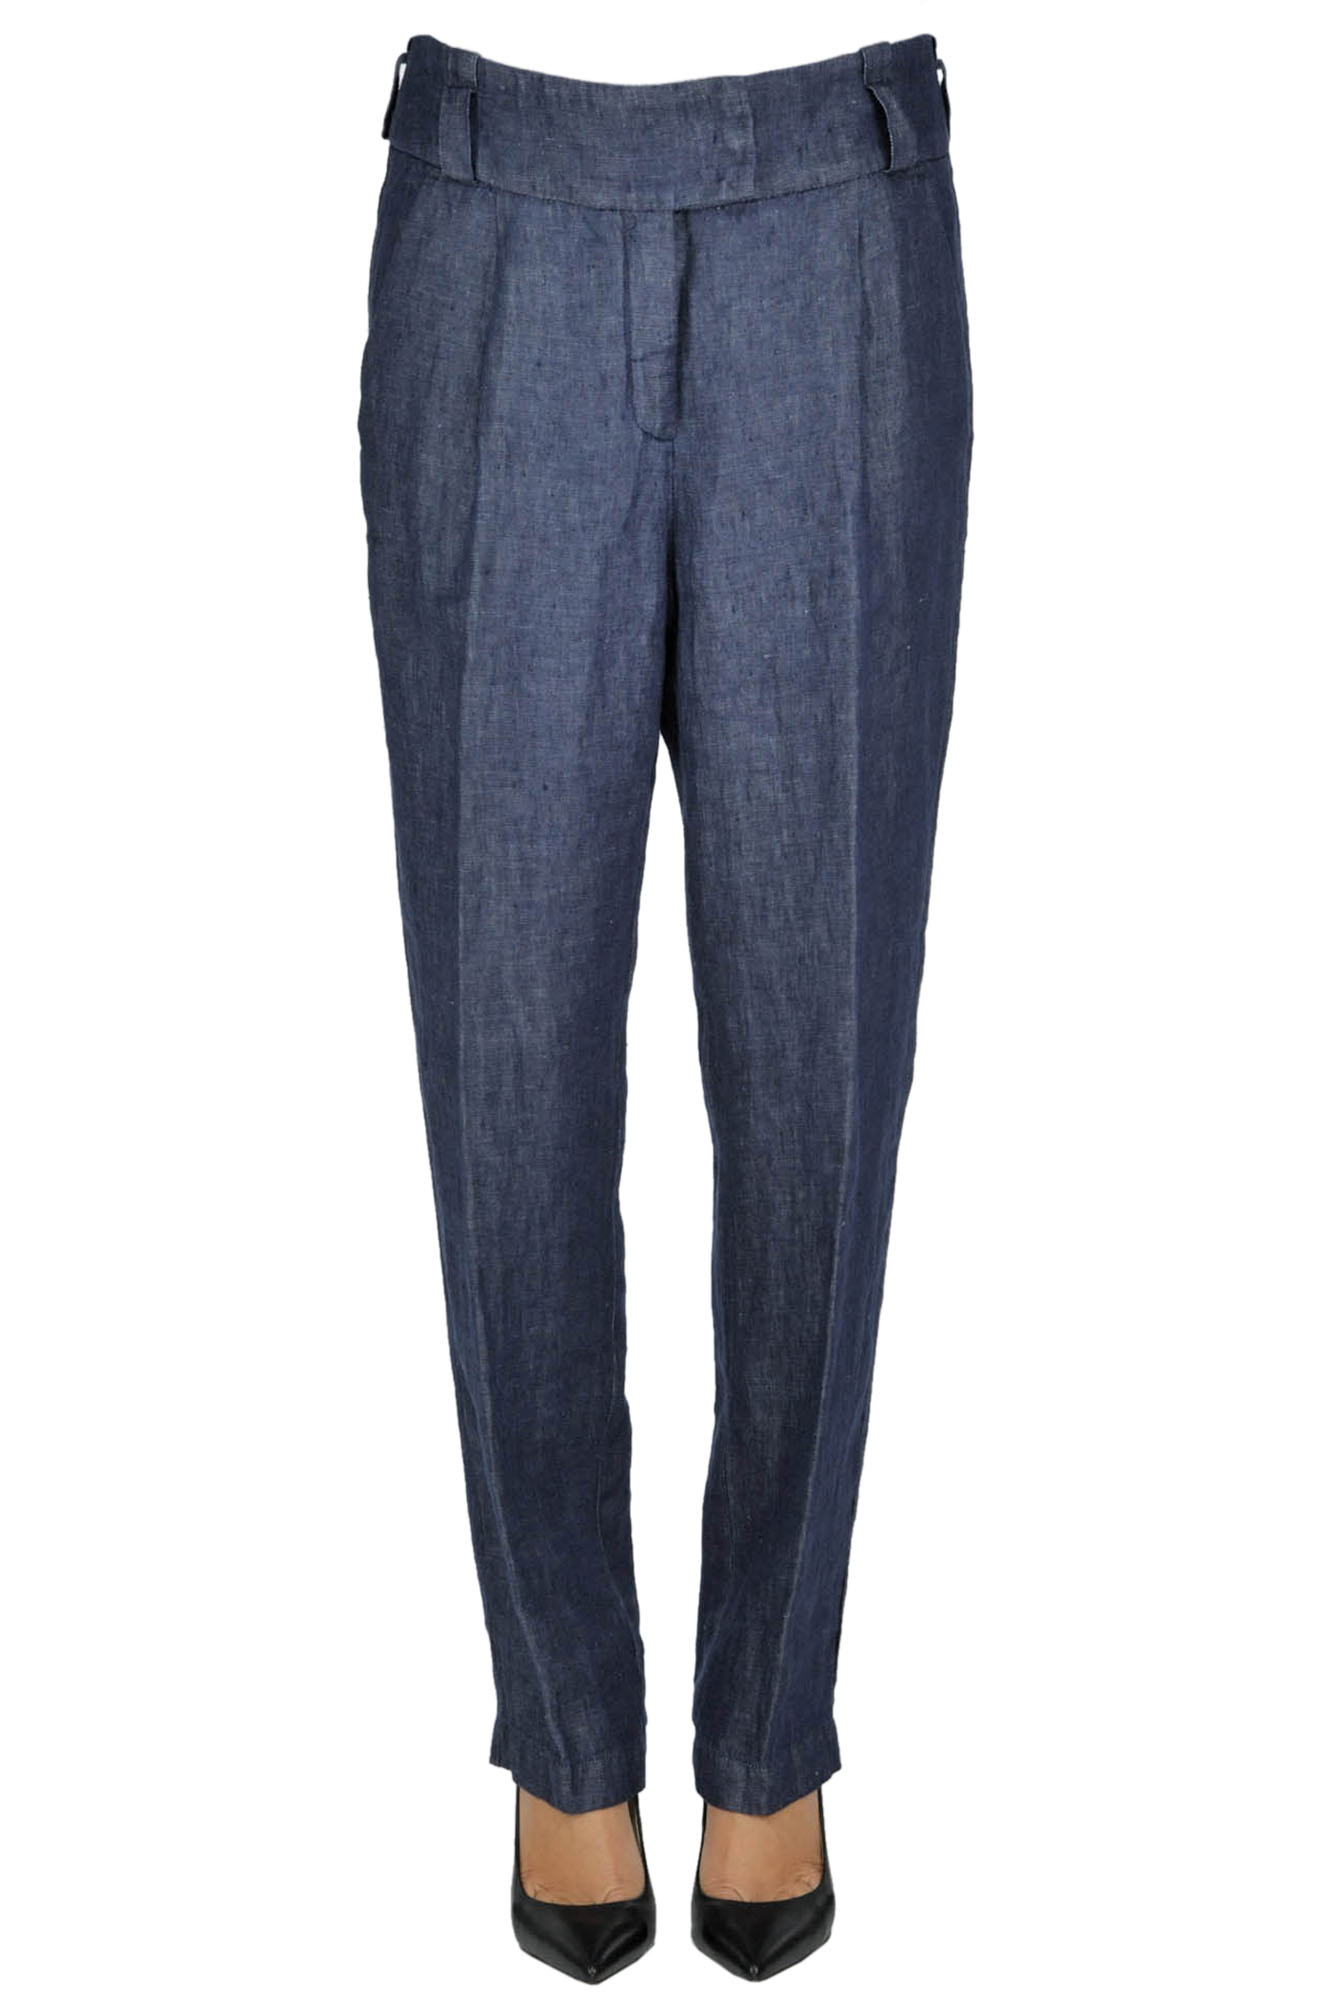 hot sales beautiful and charming price remains stable Denim style linen trousers